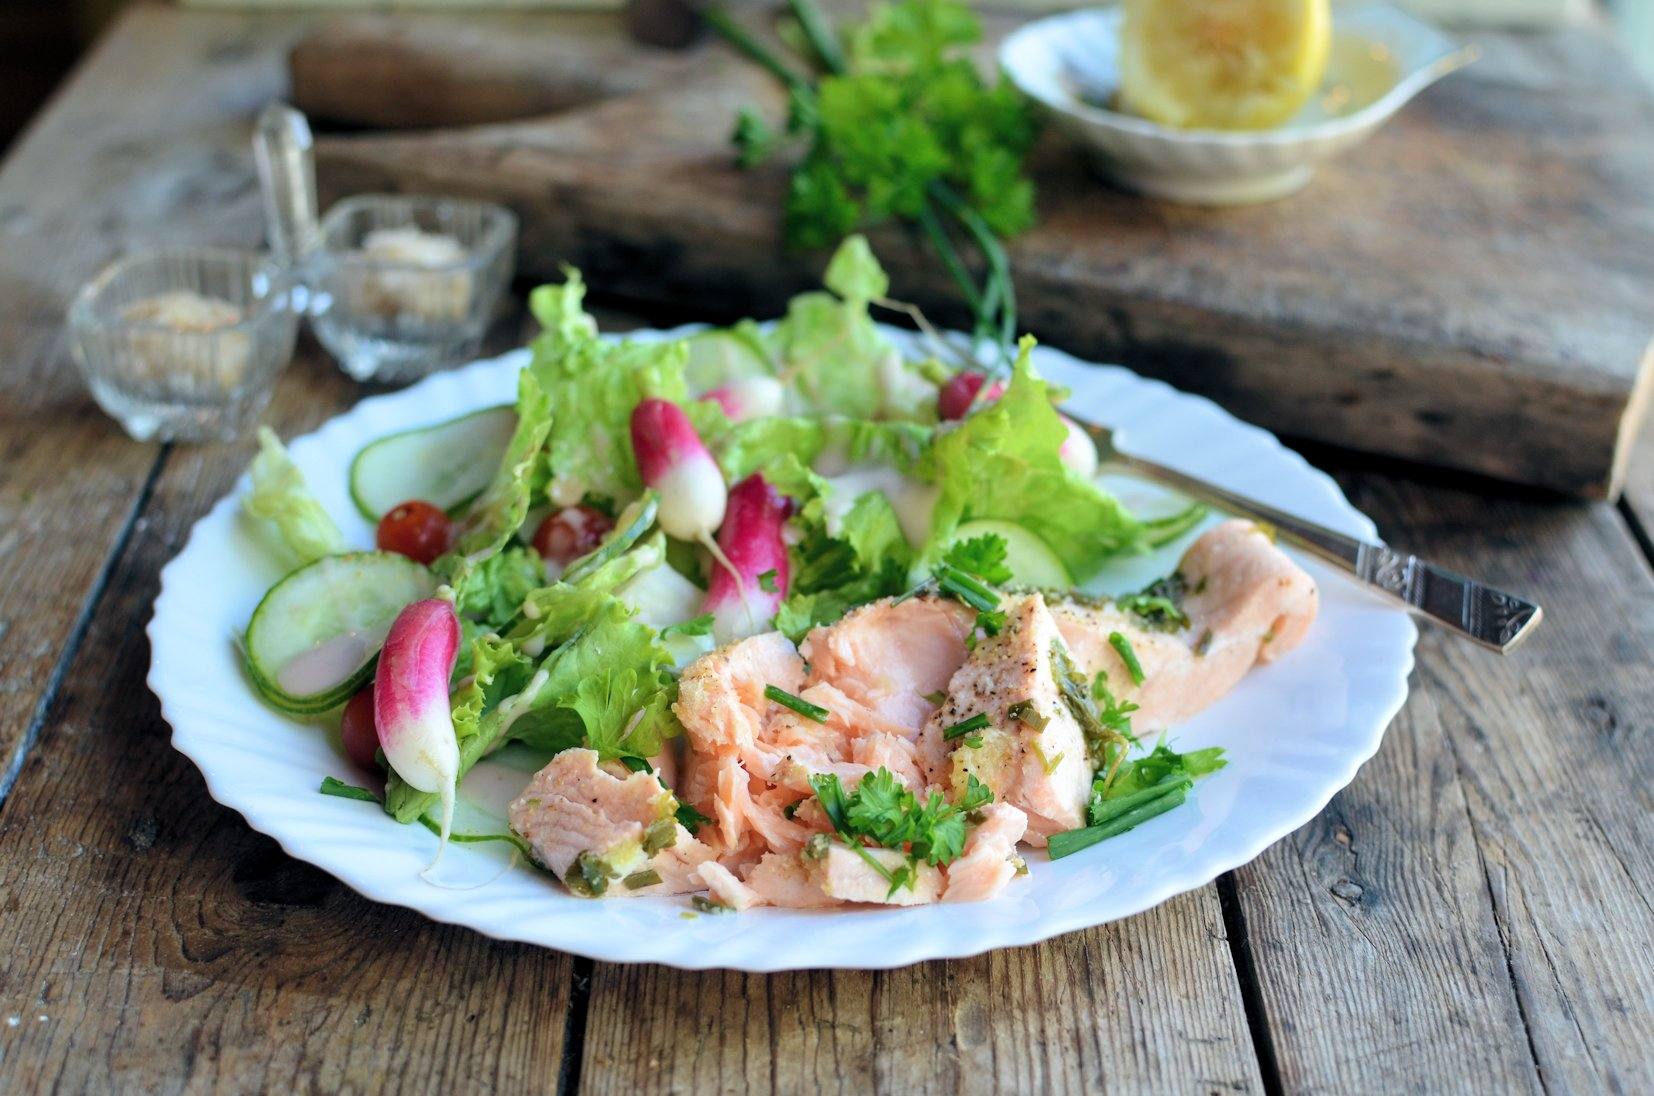 A Simple & Elegant Low-Calorie Lunch: Lemon & Herb Poached Salmon Recipe (5:2 Diet)